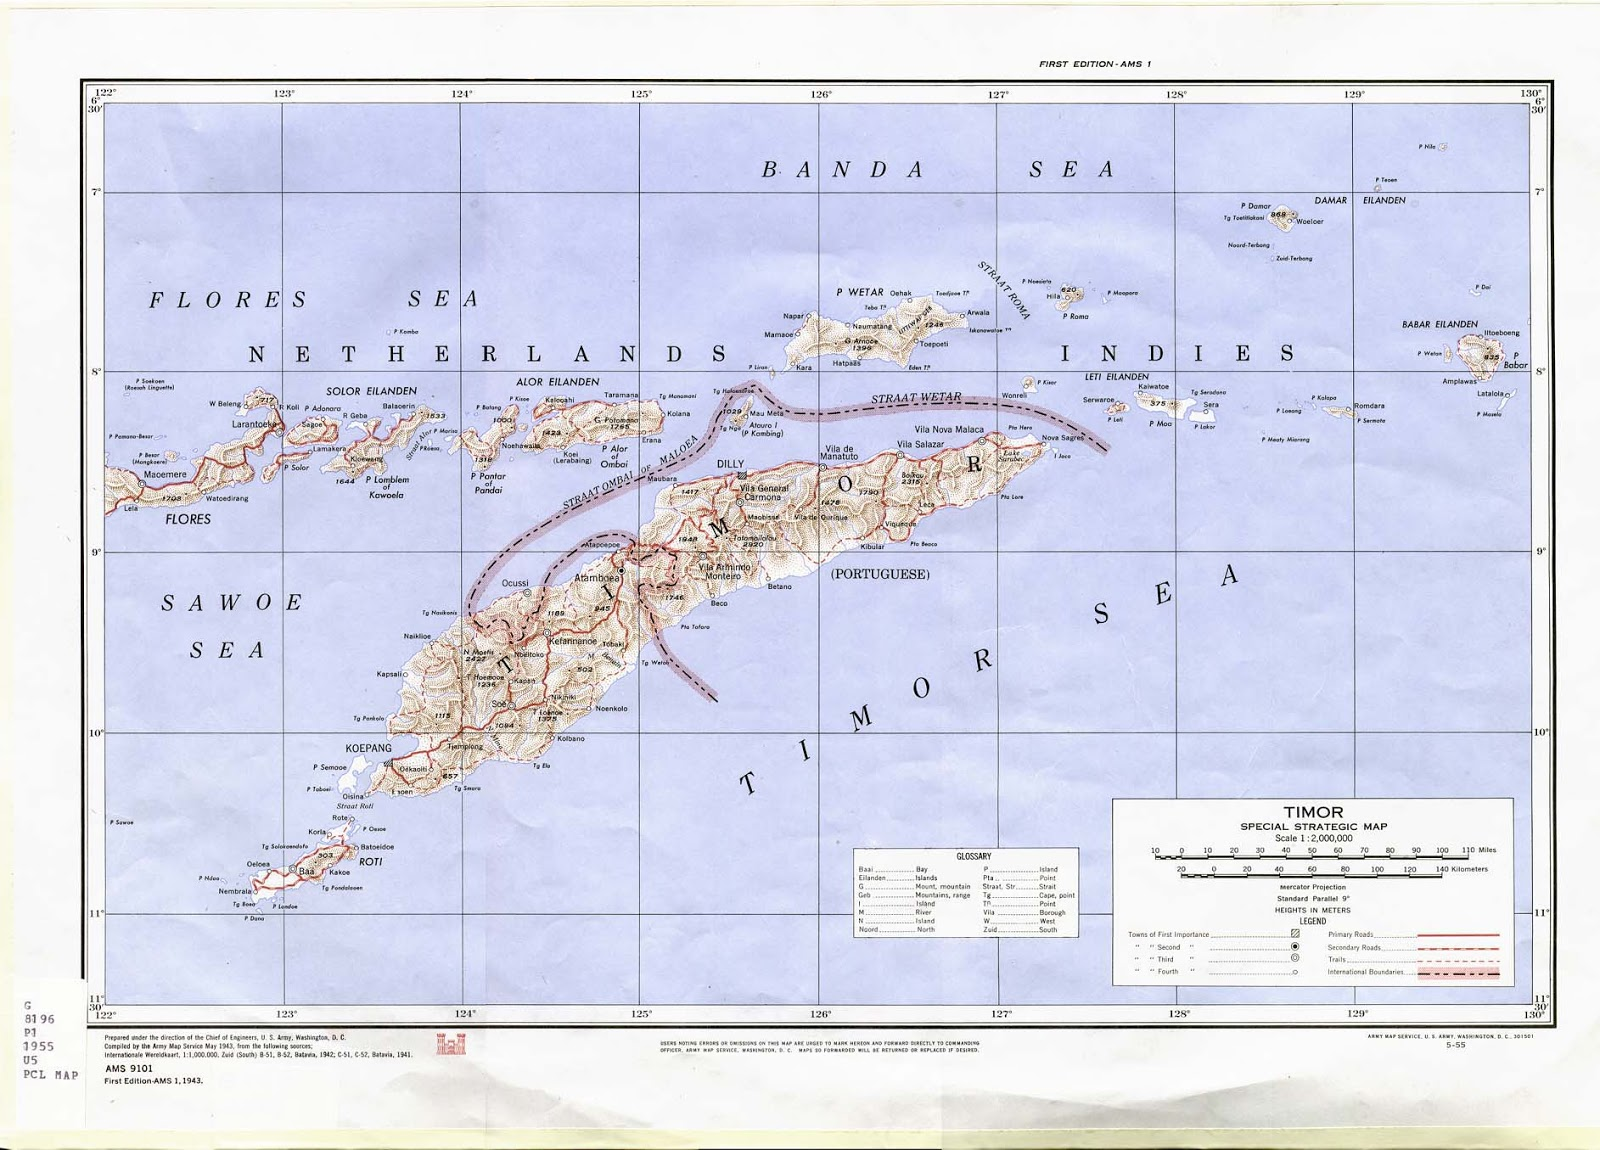 1943 us army map denoting the line between portuguese east timor and the rest of what was then still dutch territory